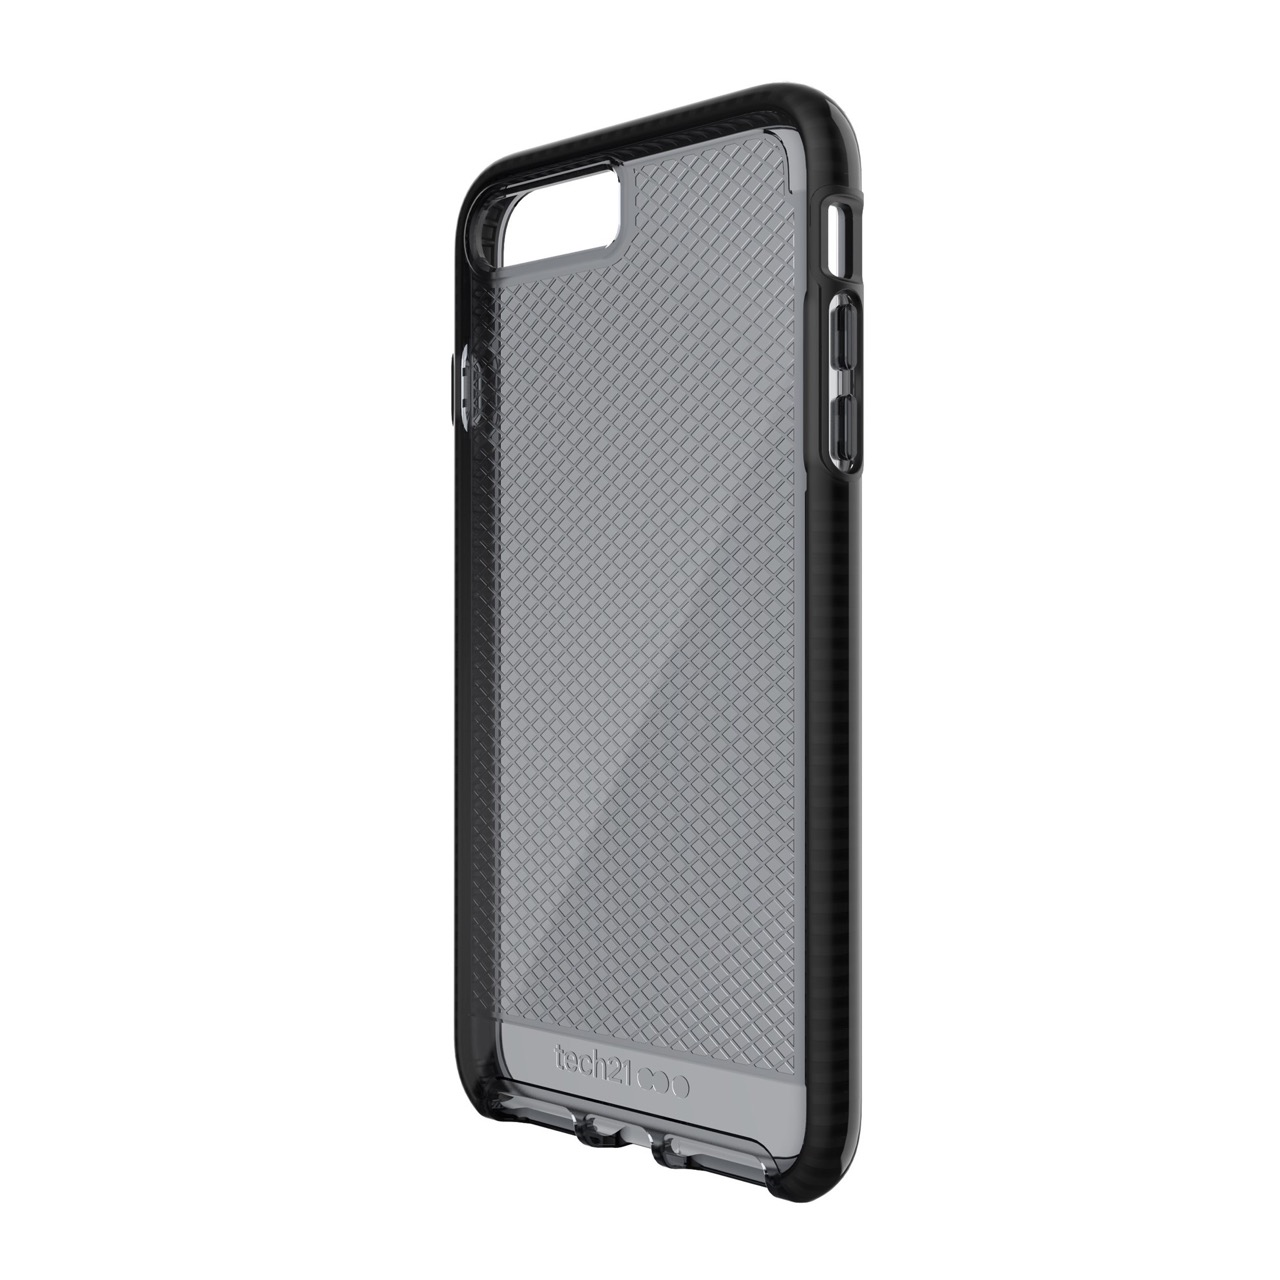 new product 9c16c db3a9 Tech21 Evo Check Case for iPhone 7 Plus